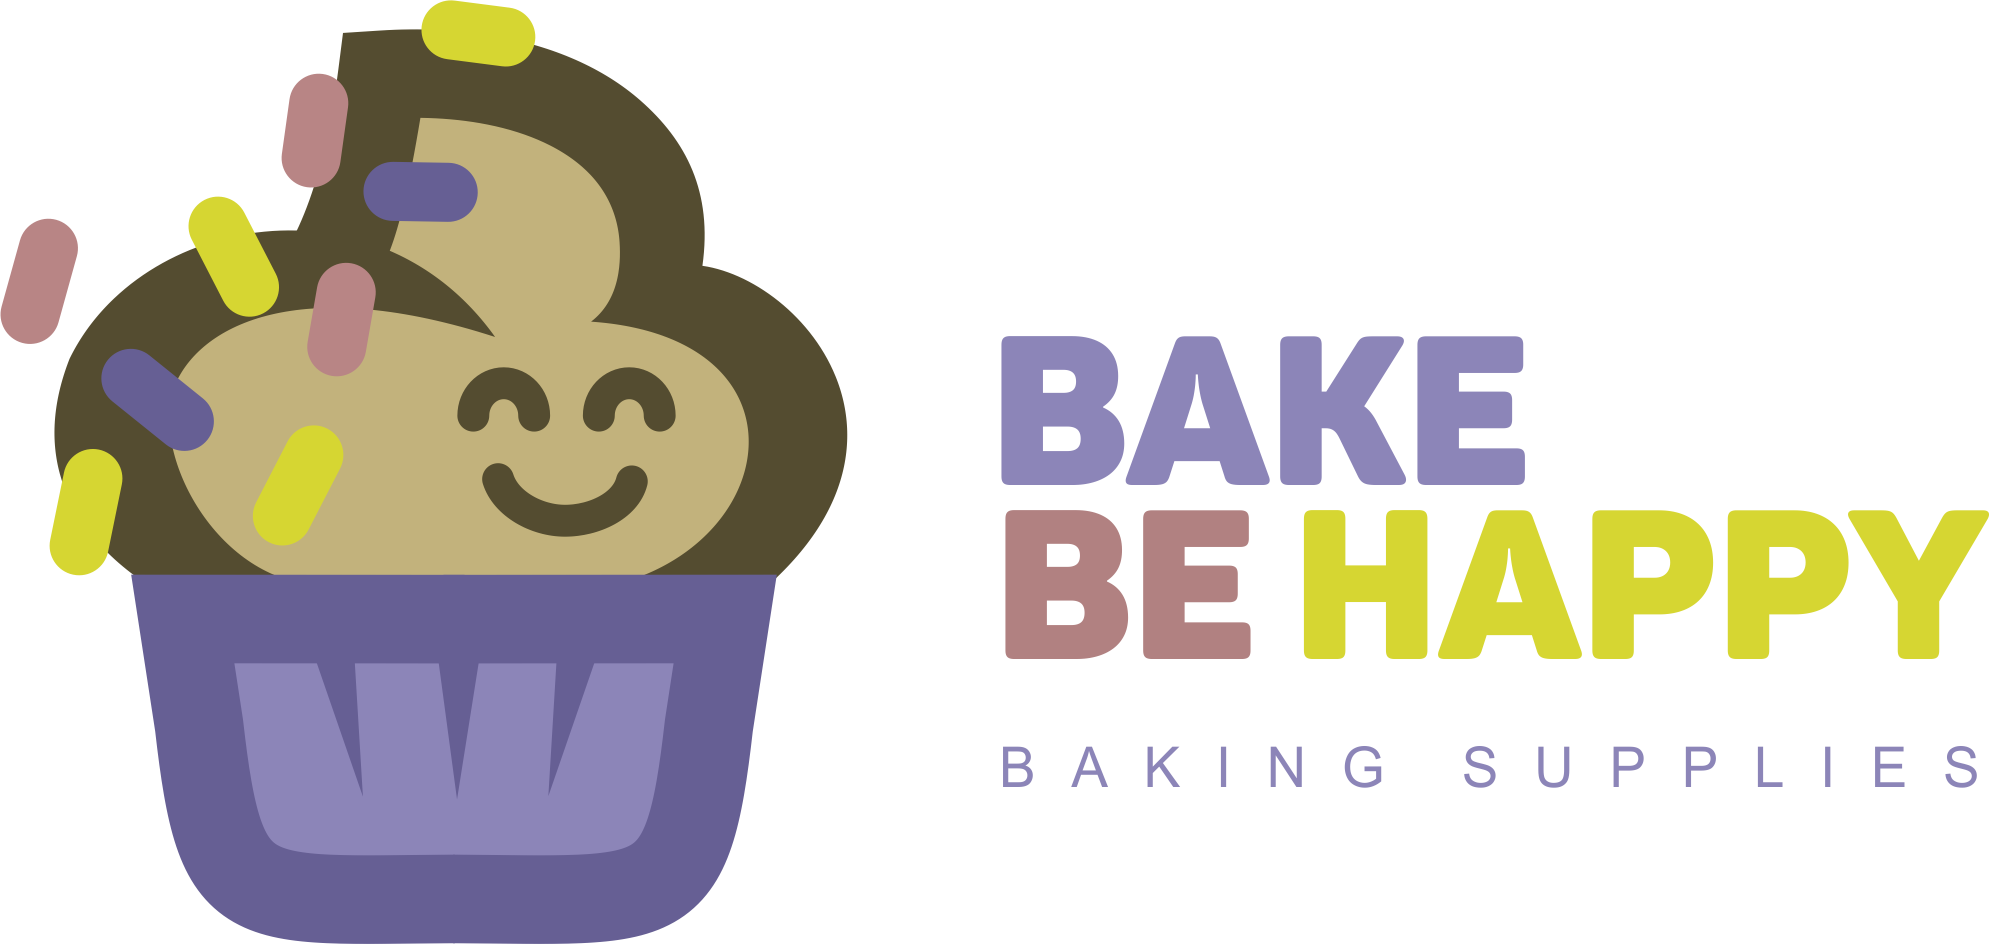 Bake Be Happy